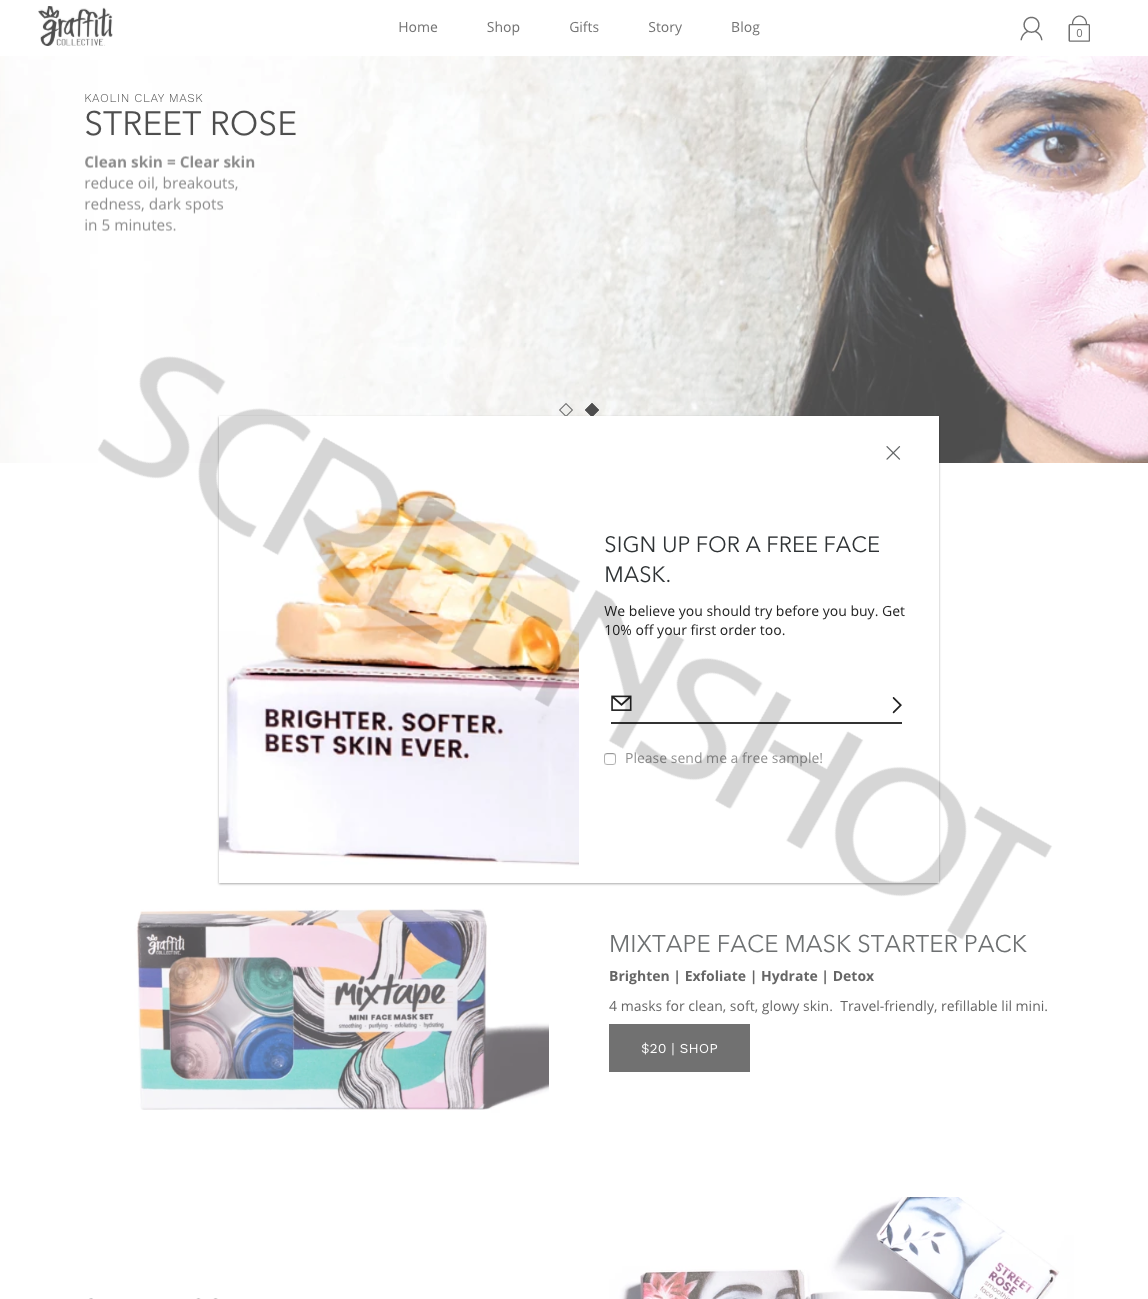 Screenshot of free sample offer (check the box)